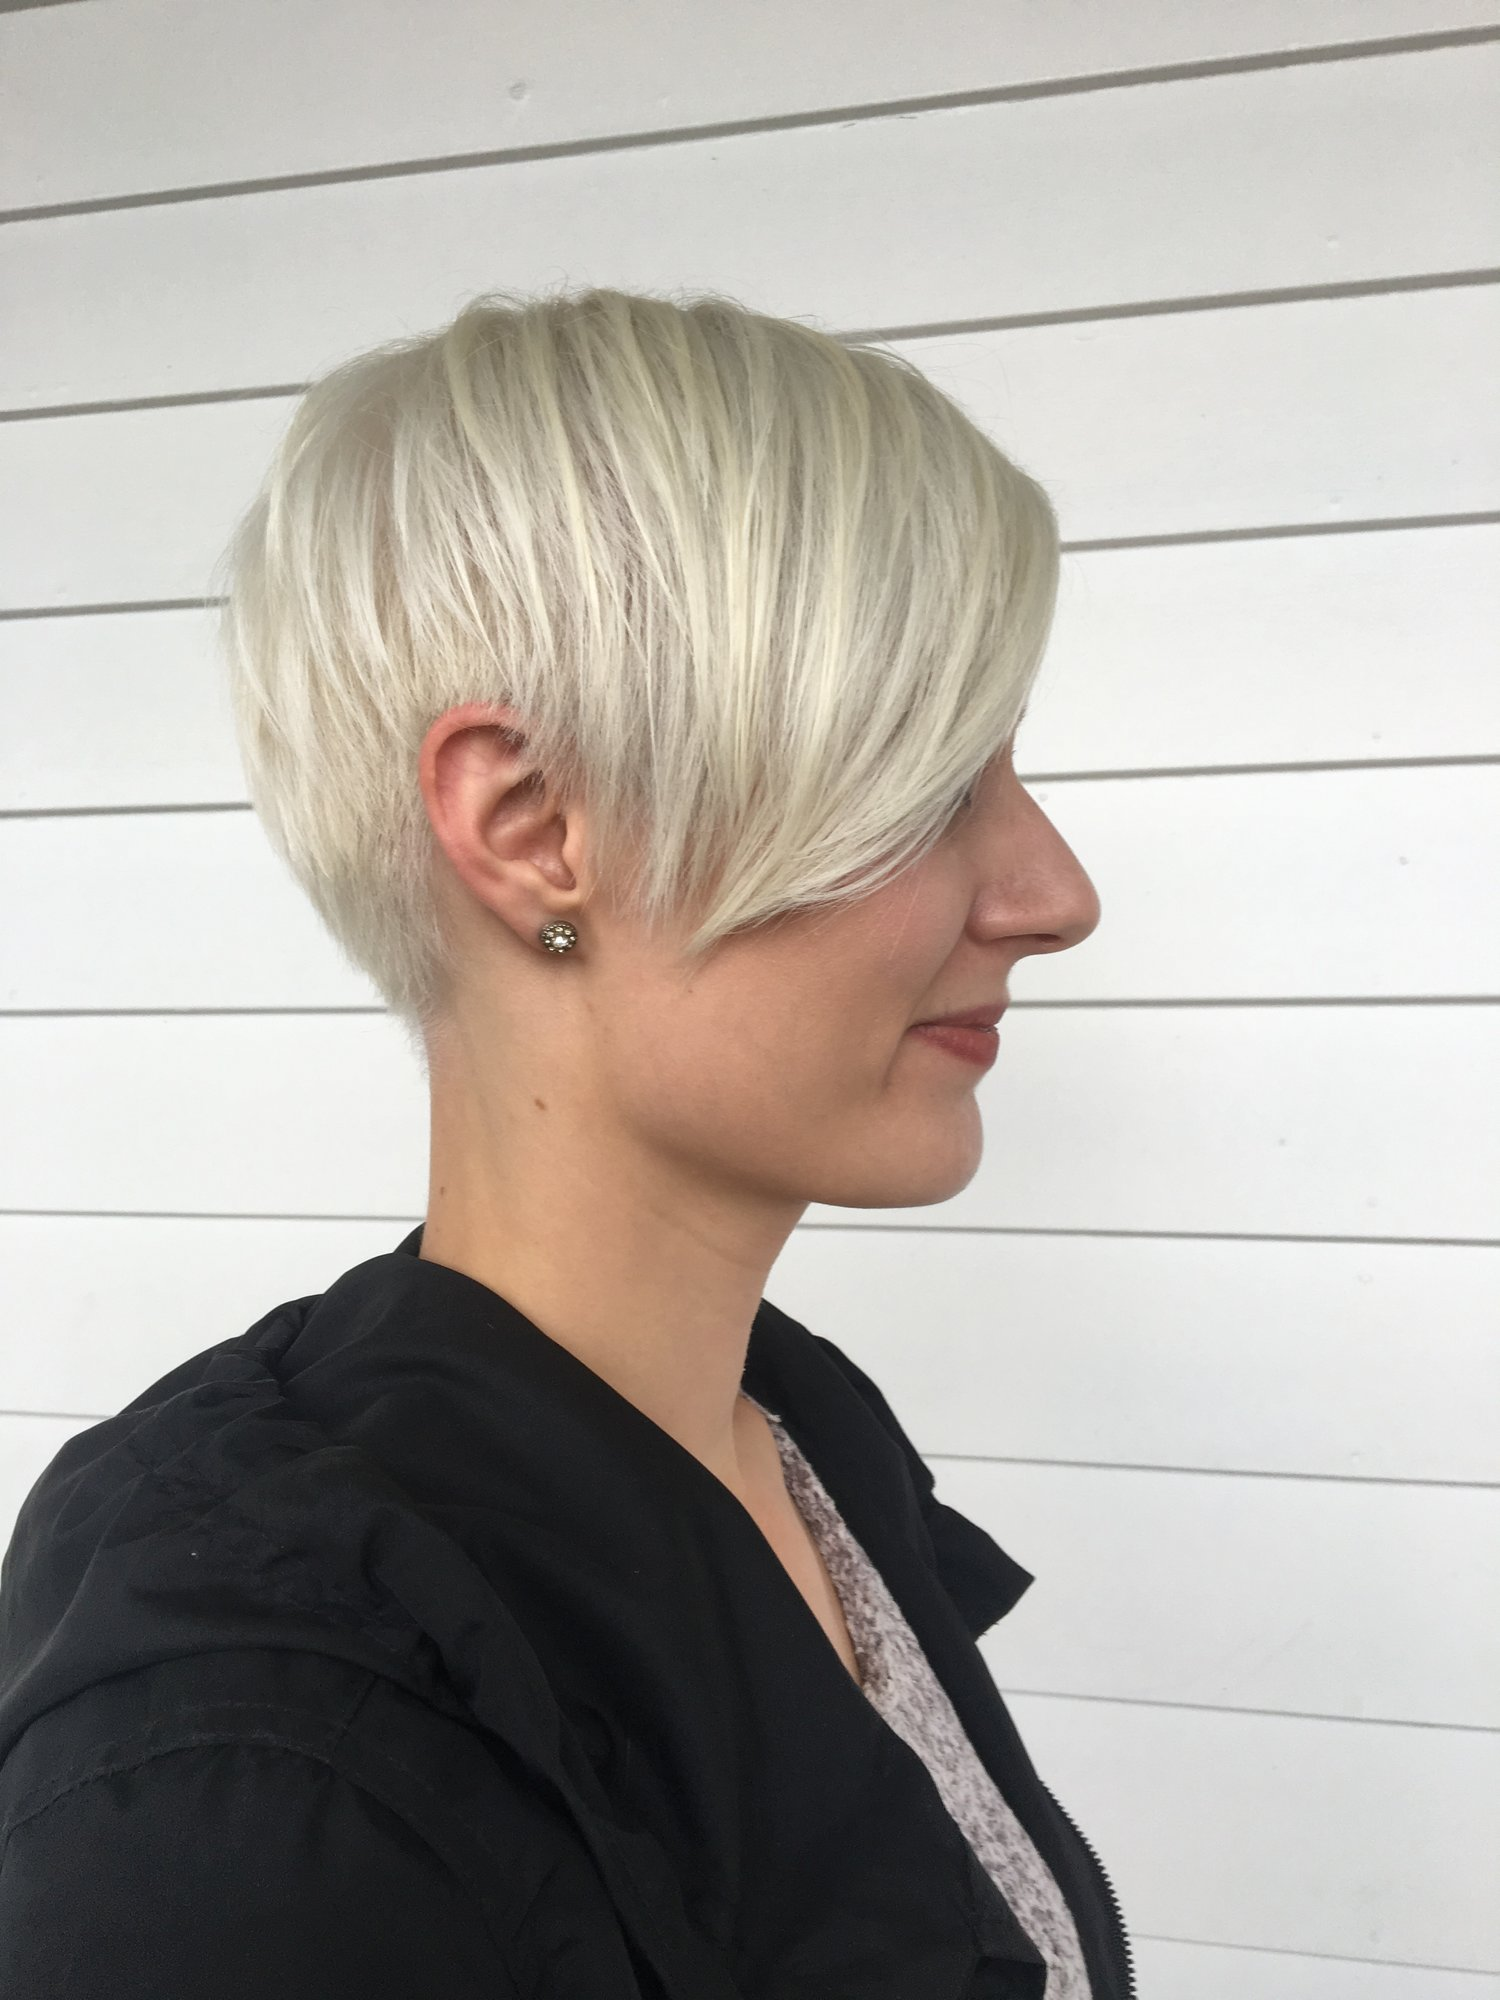 This Client Has Had Many Processes To Get Her Hair Platinum Tone Which Looks